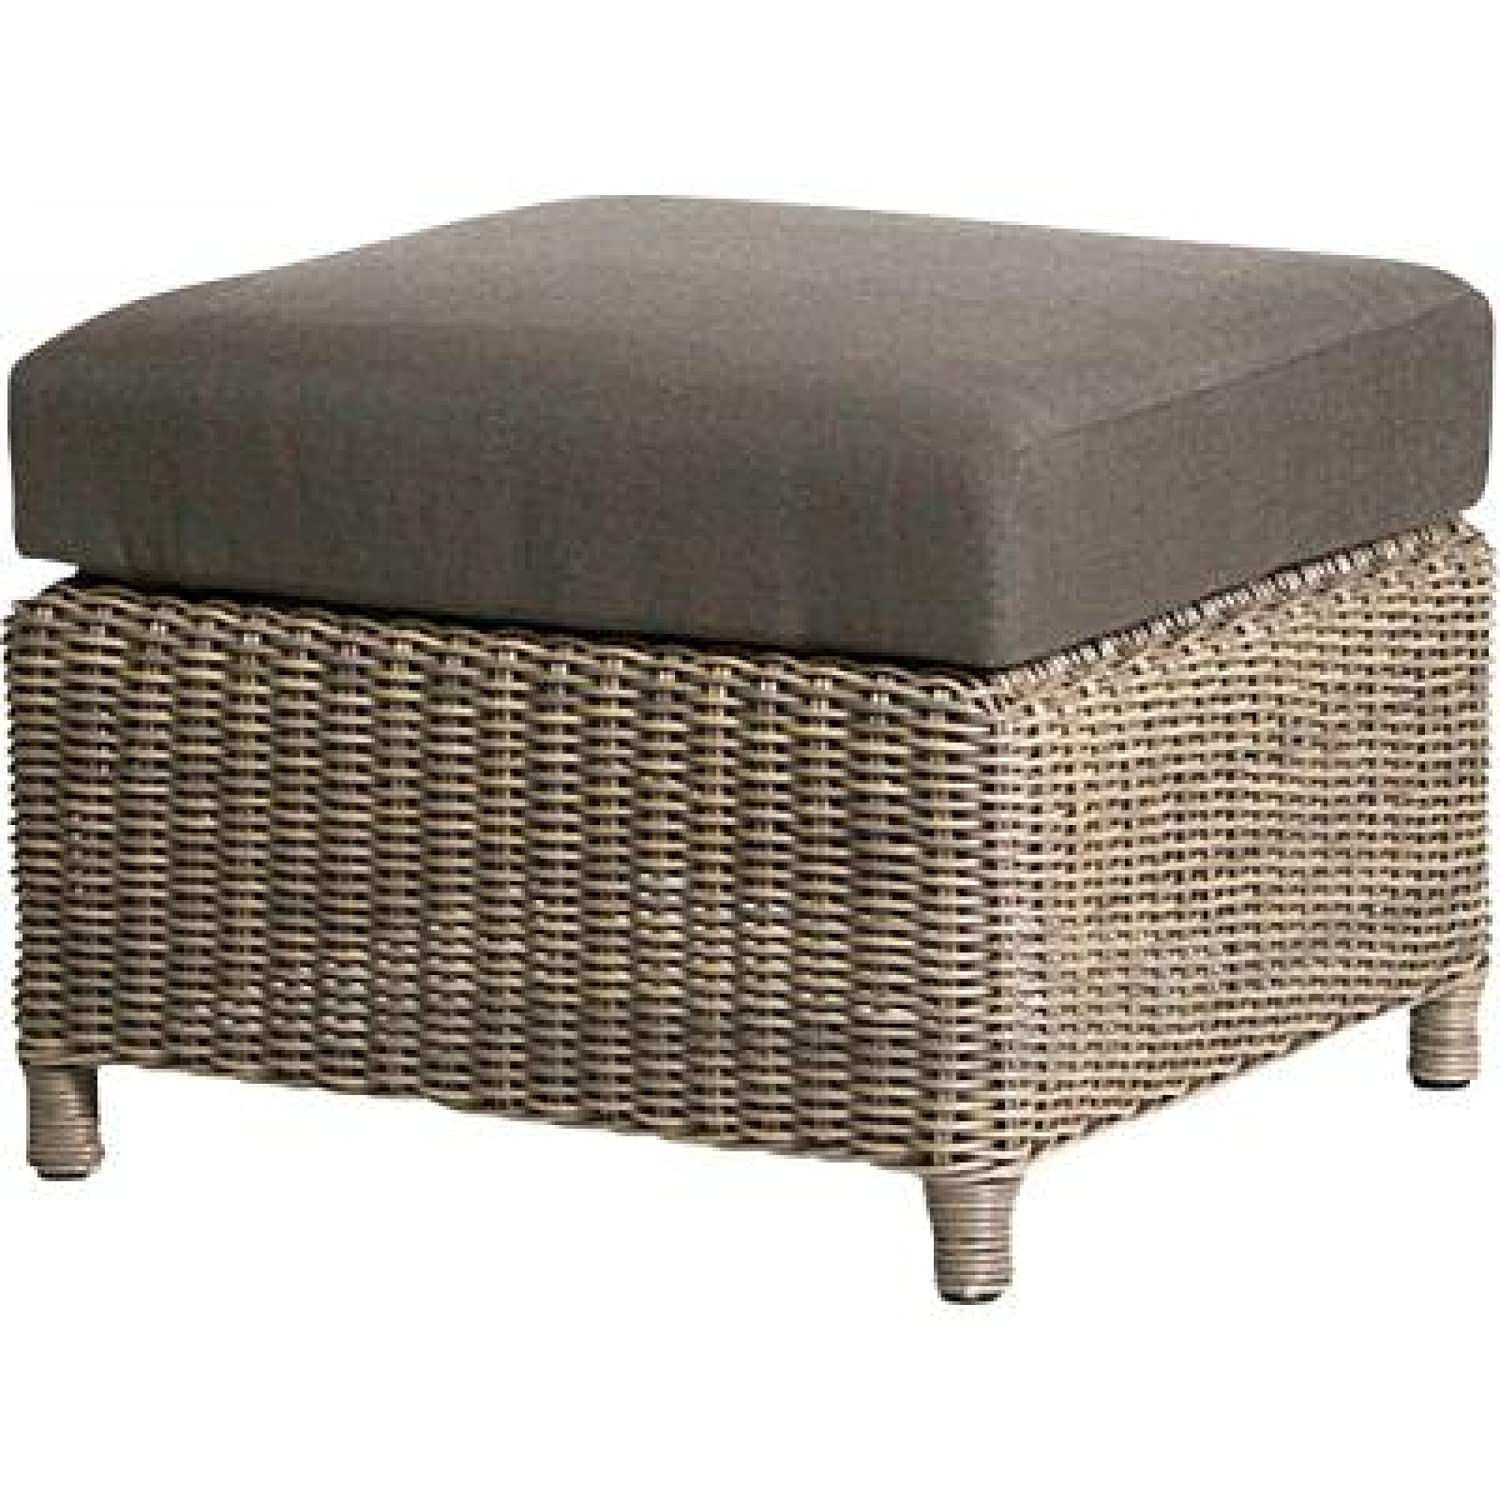 4Seasons Outdoor Lodge Fußhocker Polyrattan pure Loungehocker inkl Kissen